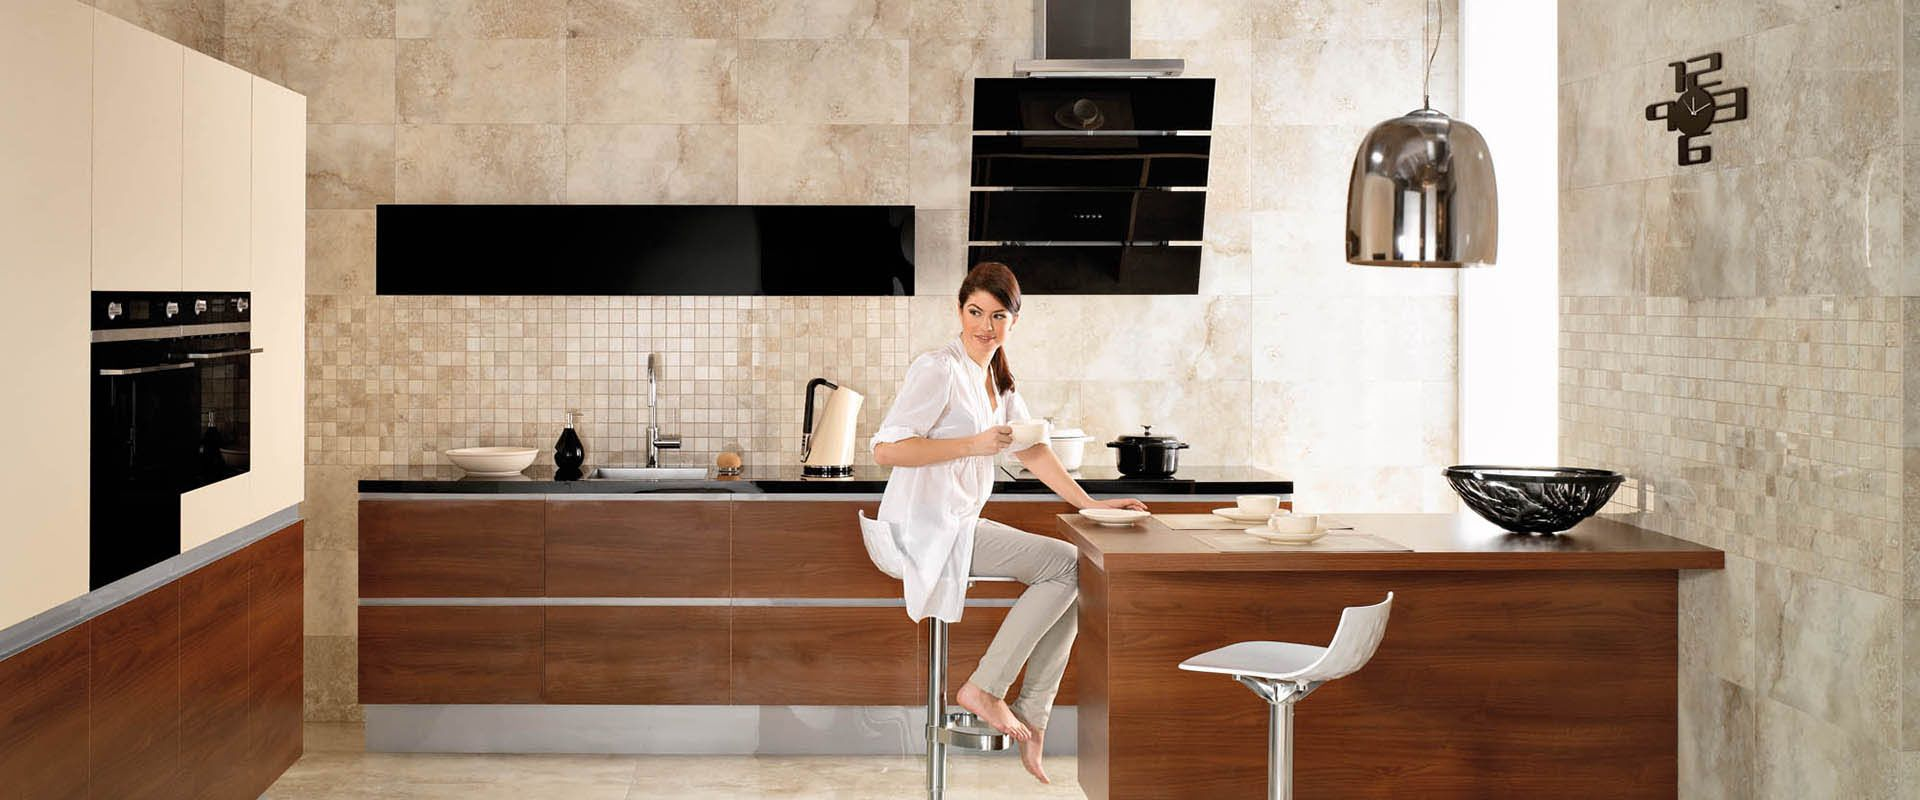 Lorex ceramic is a digital wall tiles manufacturer from morbi or lorex ceramic is a digital wall tiles manufacturer from morbi or tiles exporter india that provides ceramic tiles india high quality and variety of wall dailygadgetfo Images